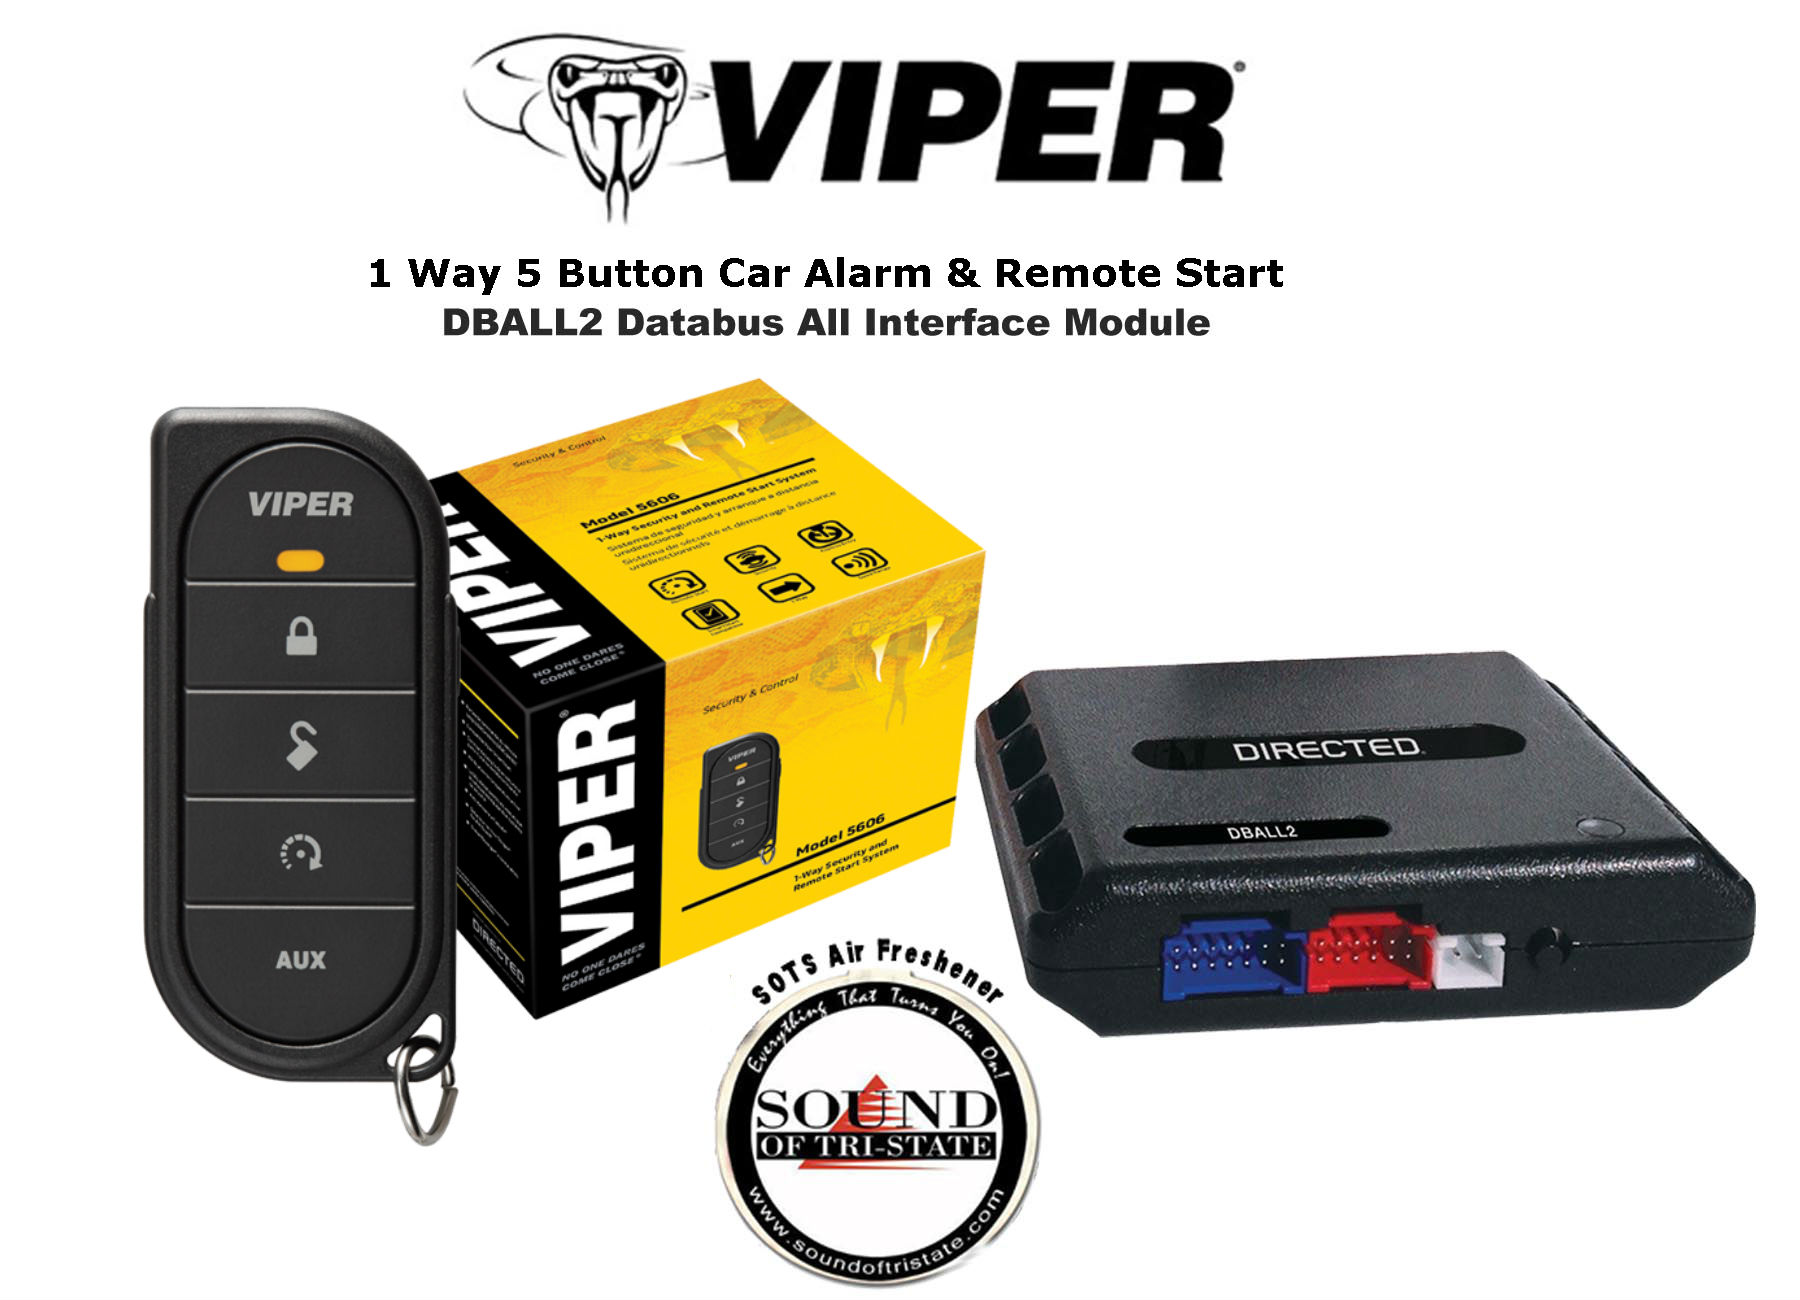 viper 5606v 1 way car alarm remote start system w xpresskit bypass module dball ebay. Black Bedroom Furniture Sets. Home Design Ideas